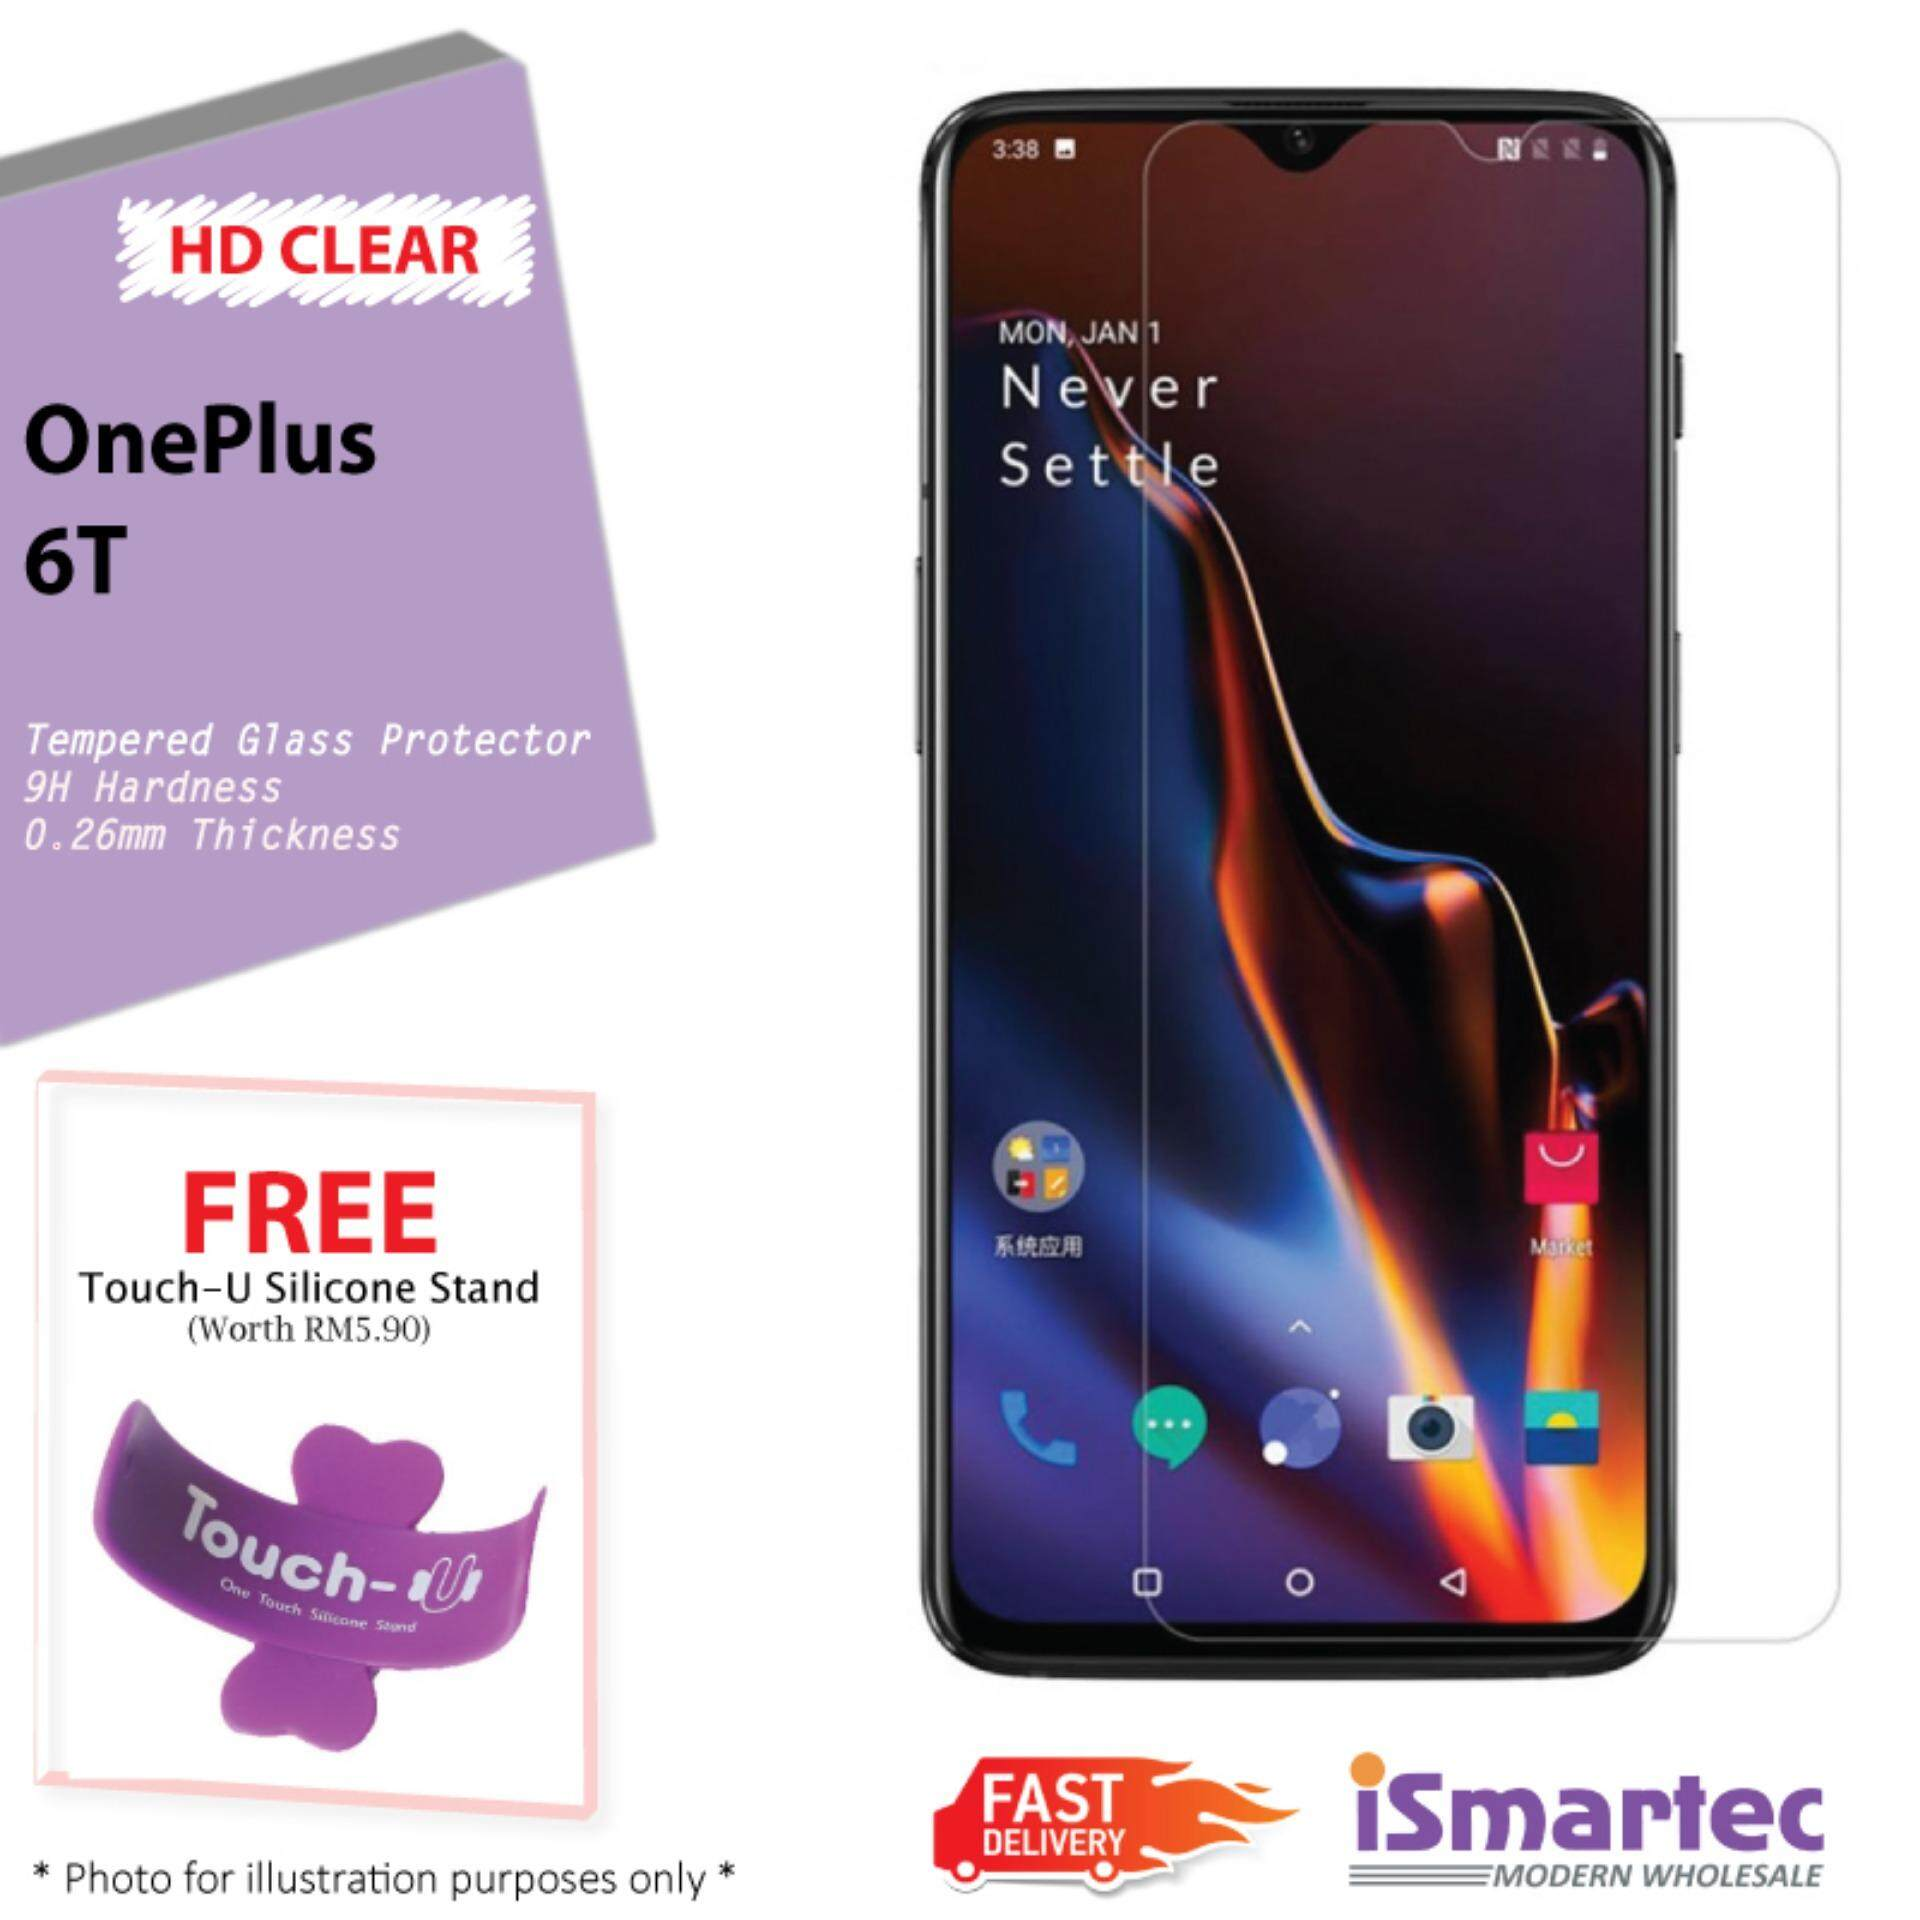 [Clear] Tempered Glass For OnePlus 6T + FREE Touch U